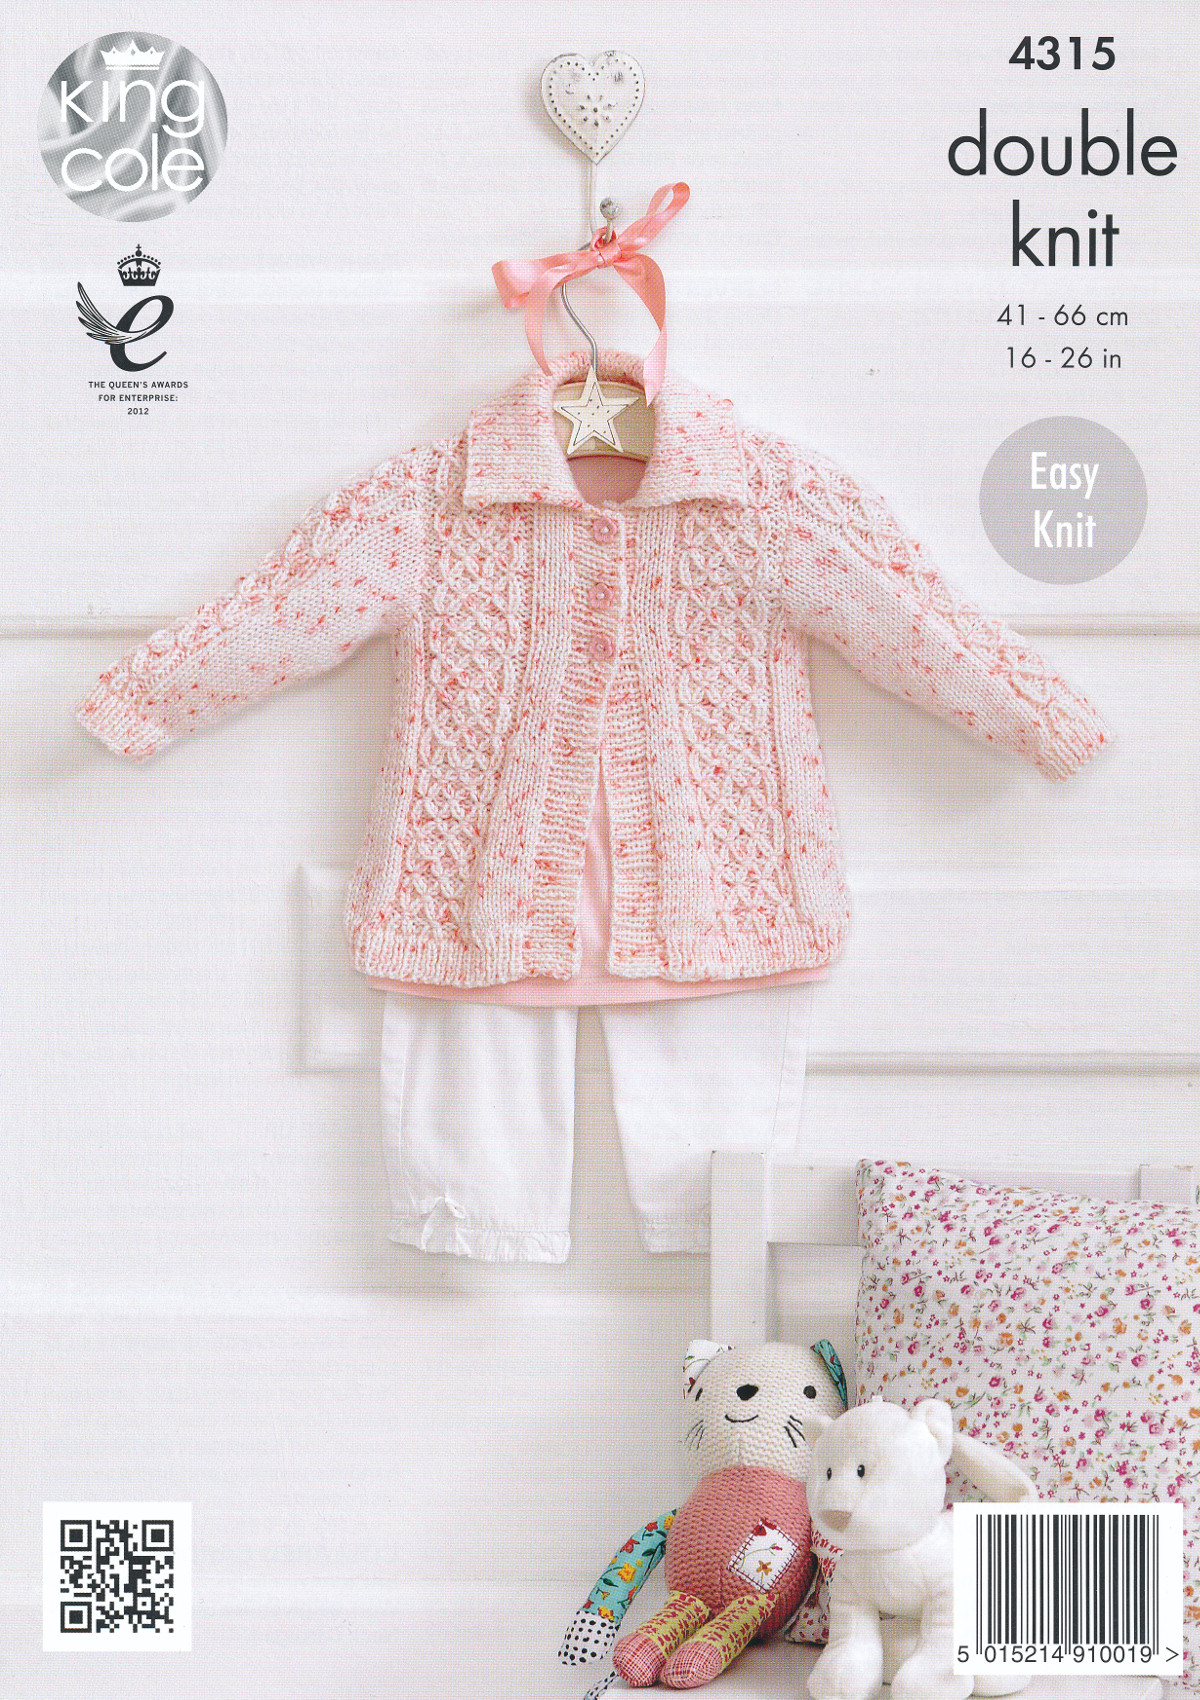 Baby Double Knitting Patterns : King Cole Double Knitting Pattern Baby Coat Collared Cardigan Hat Smarty DK 4...